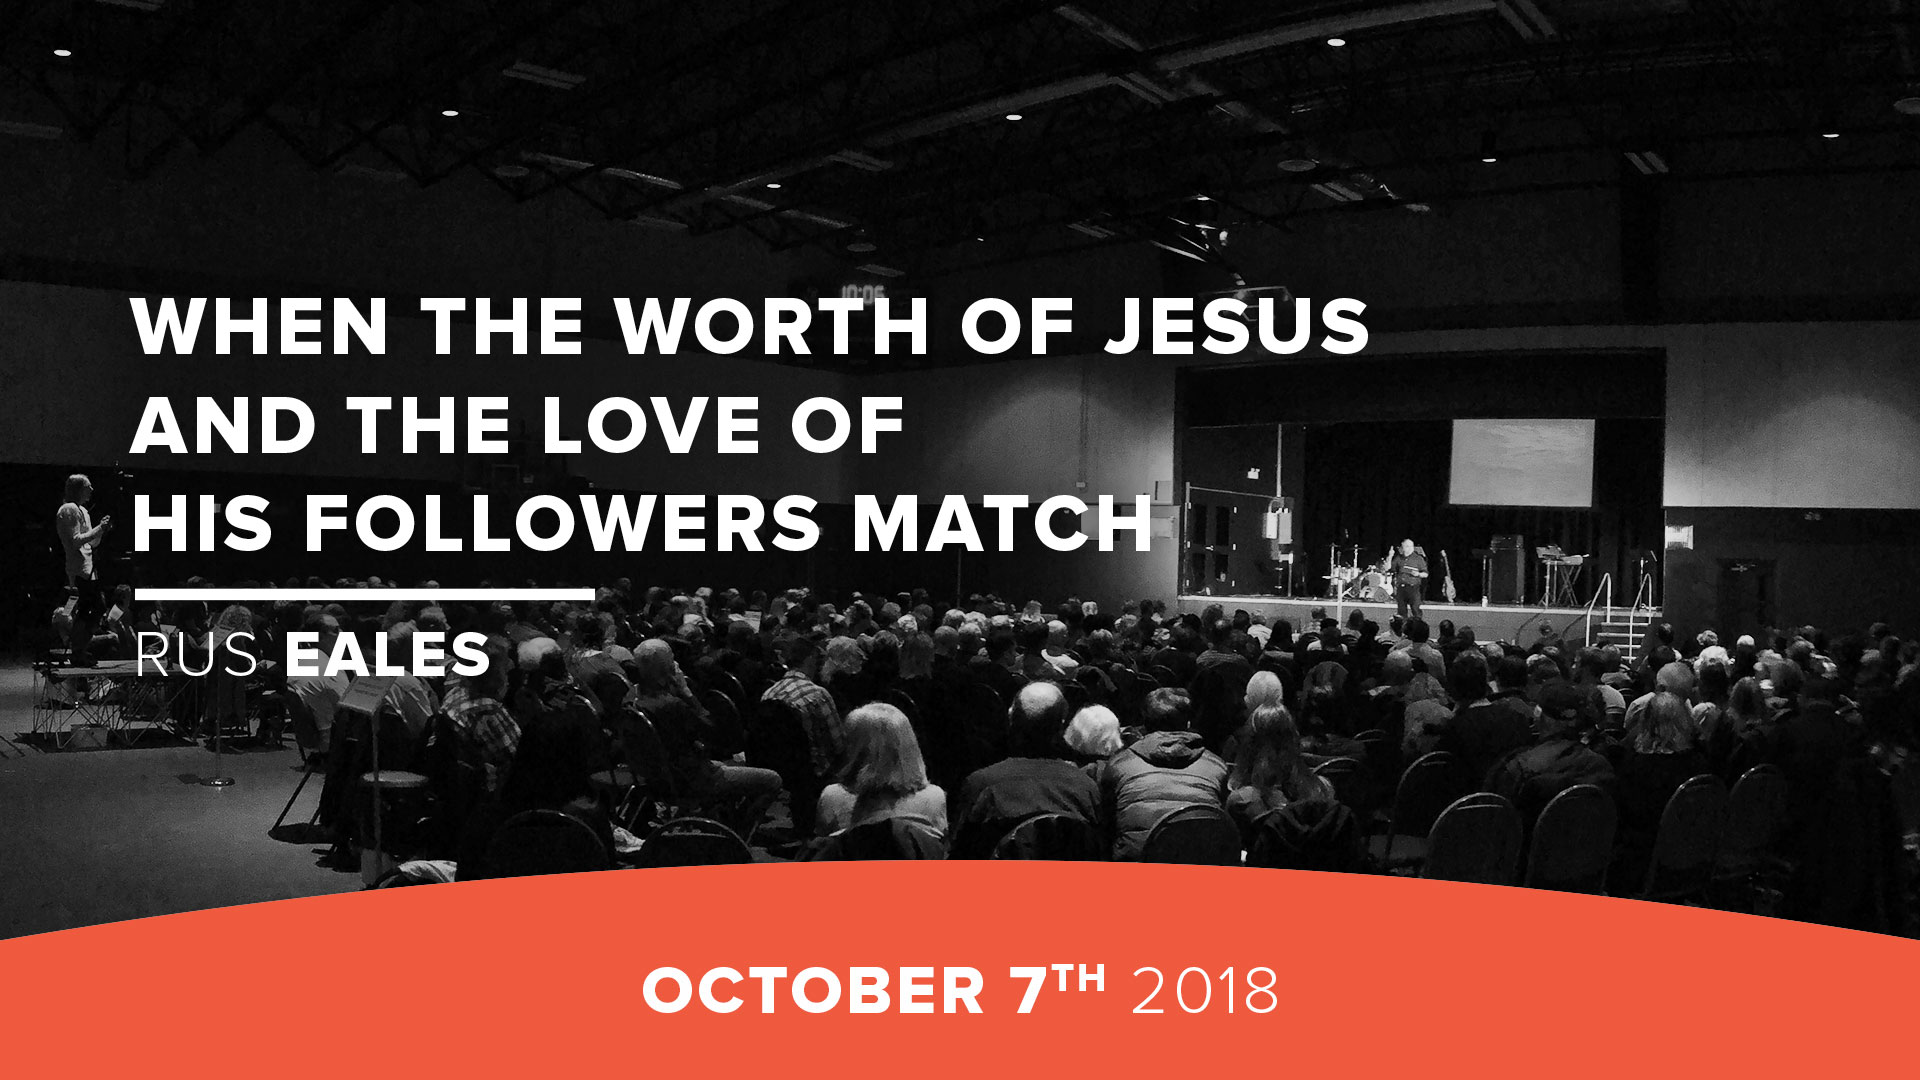 When the worth of Jesus and the love of His followers match